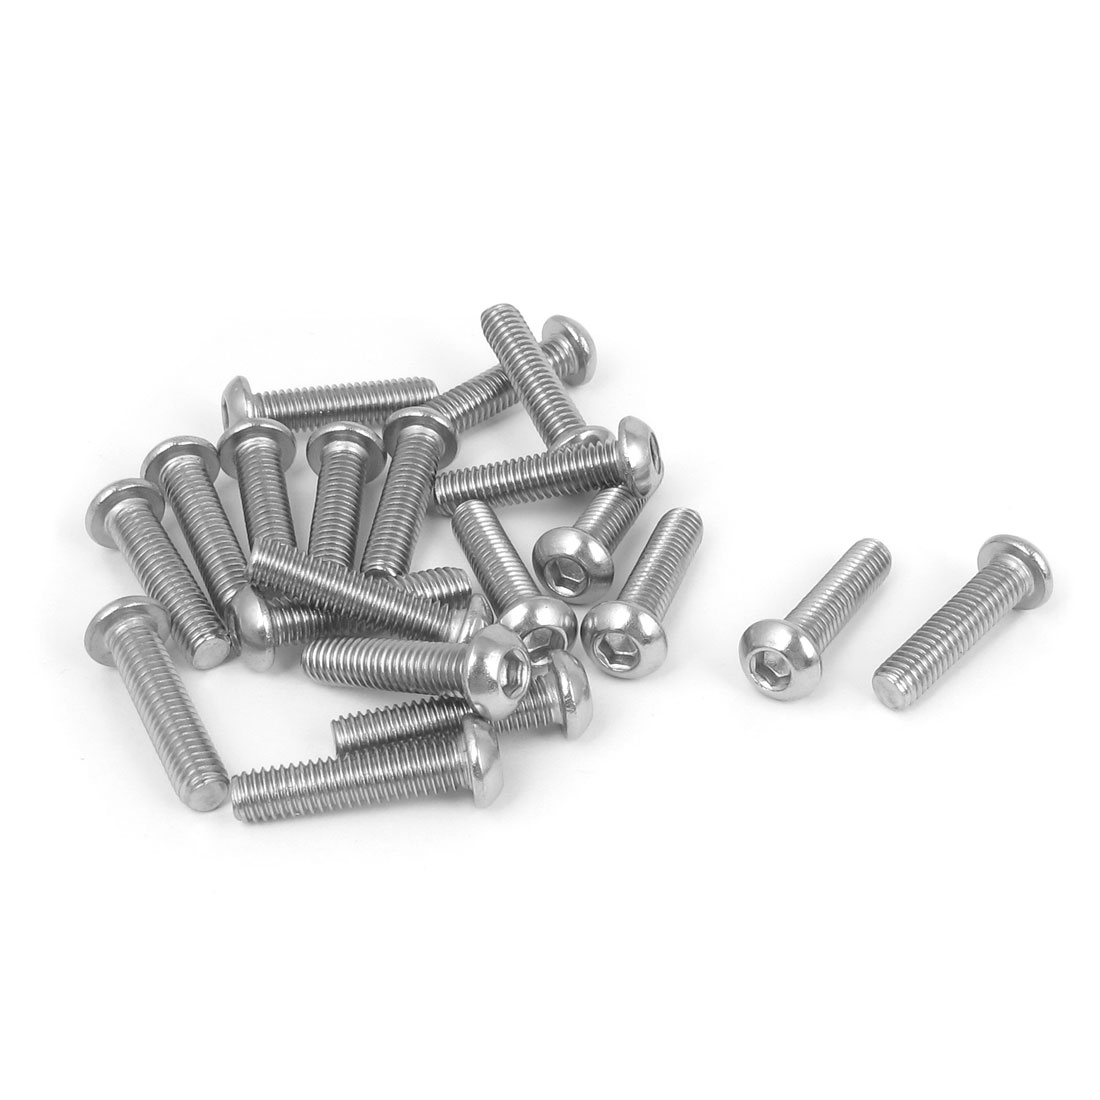 M6x25mm 304 Stainless Steel Hex Socket Machine Countersunk Round Head Screw Bolts 20PCS